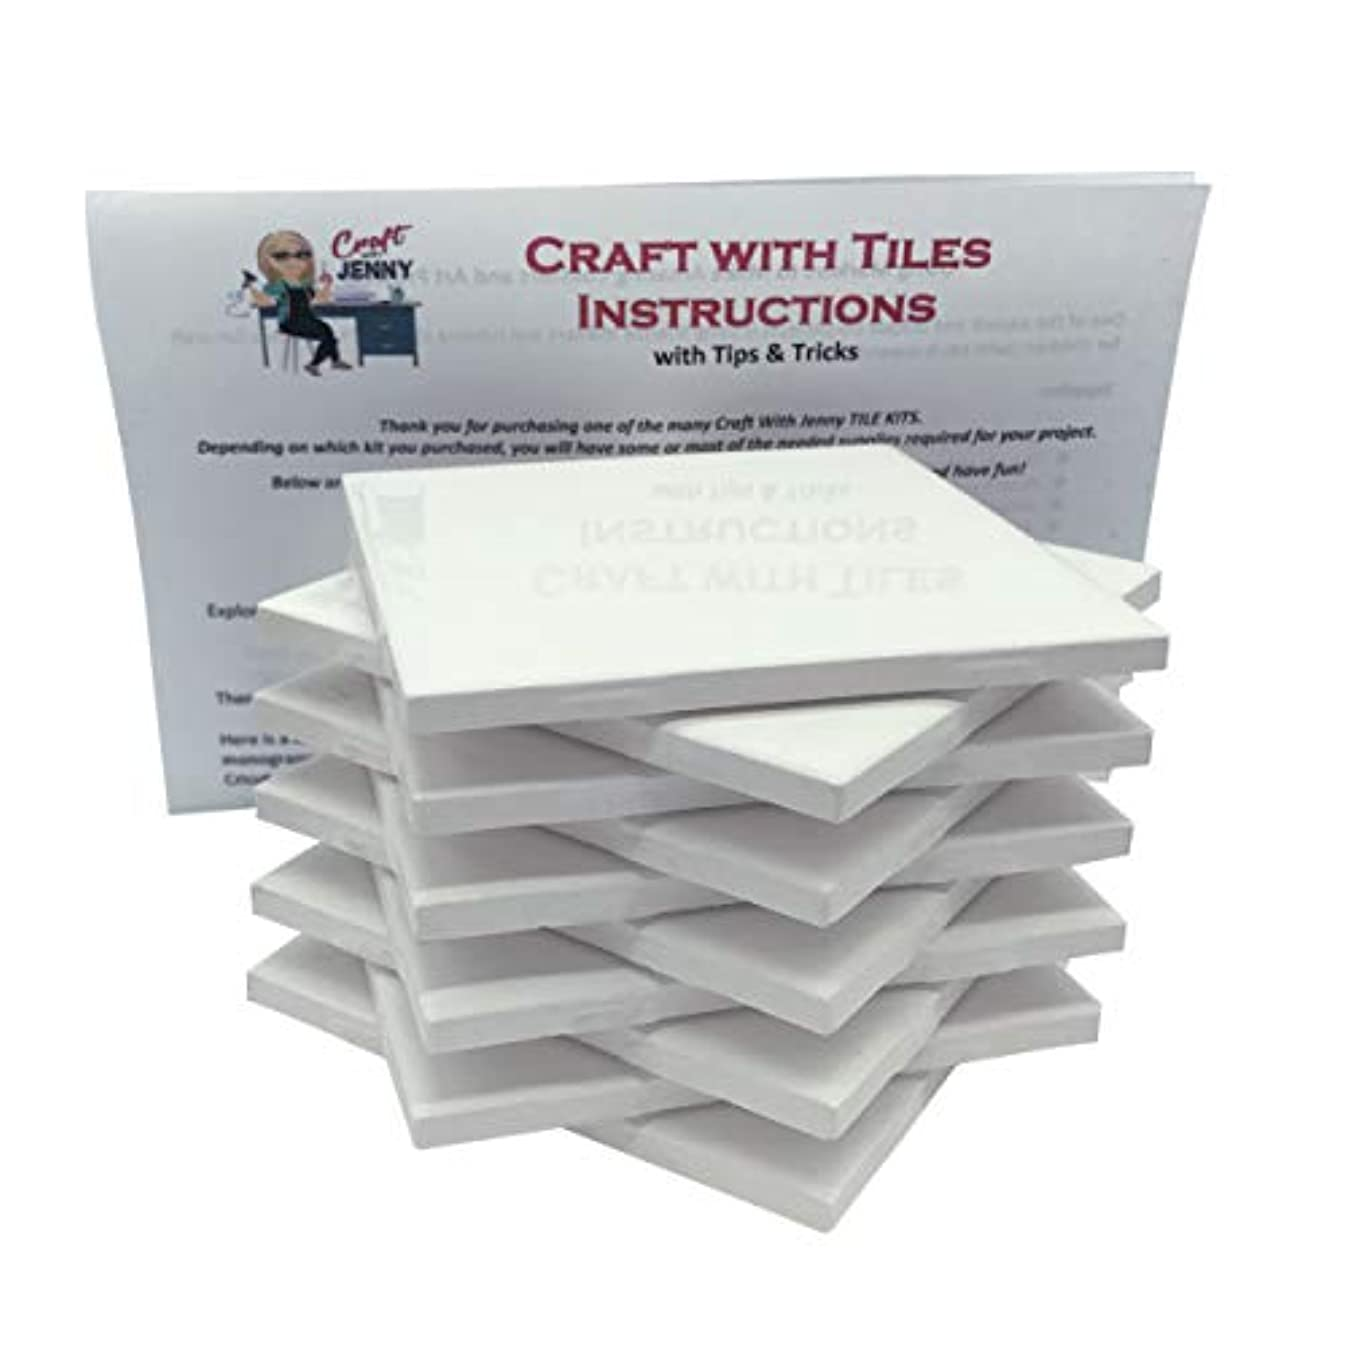 Coaster Tile Craft Kit, Set of 10 Ceramic White Tiles 4x4, with Detailed Instructions Plus Tips and Tricks, DIY Make Your Own Coasters, Mosaics, Painting Projects, Decoupage